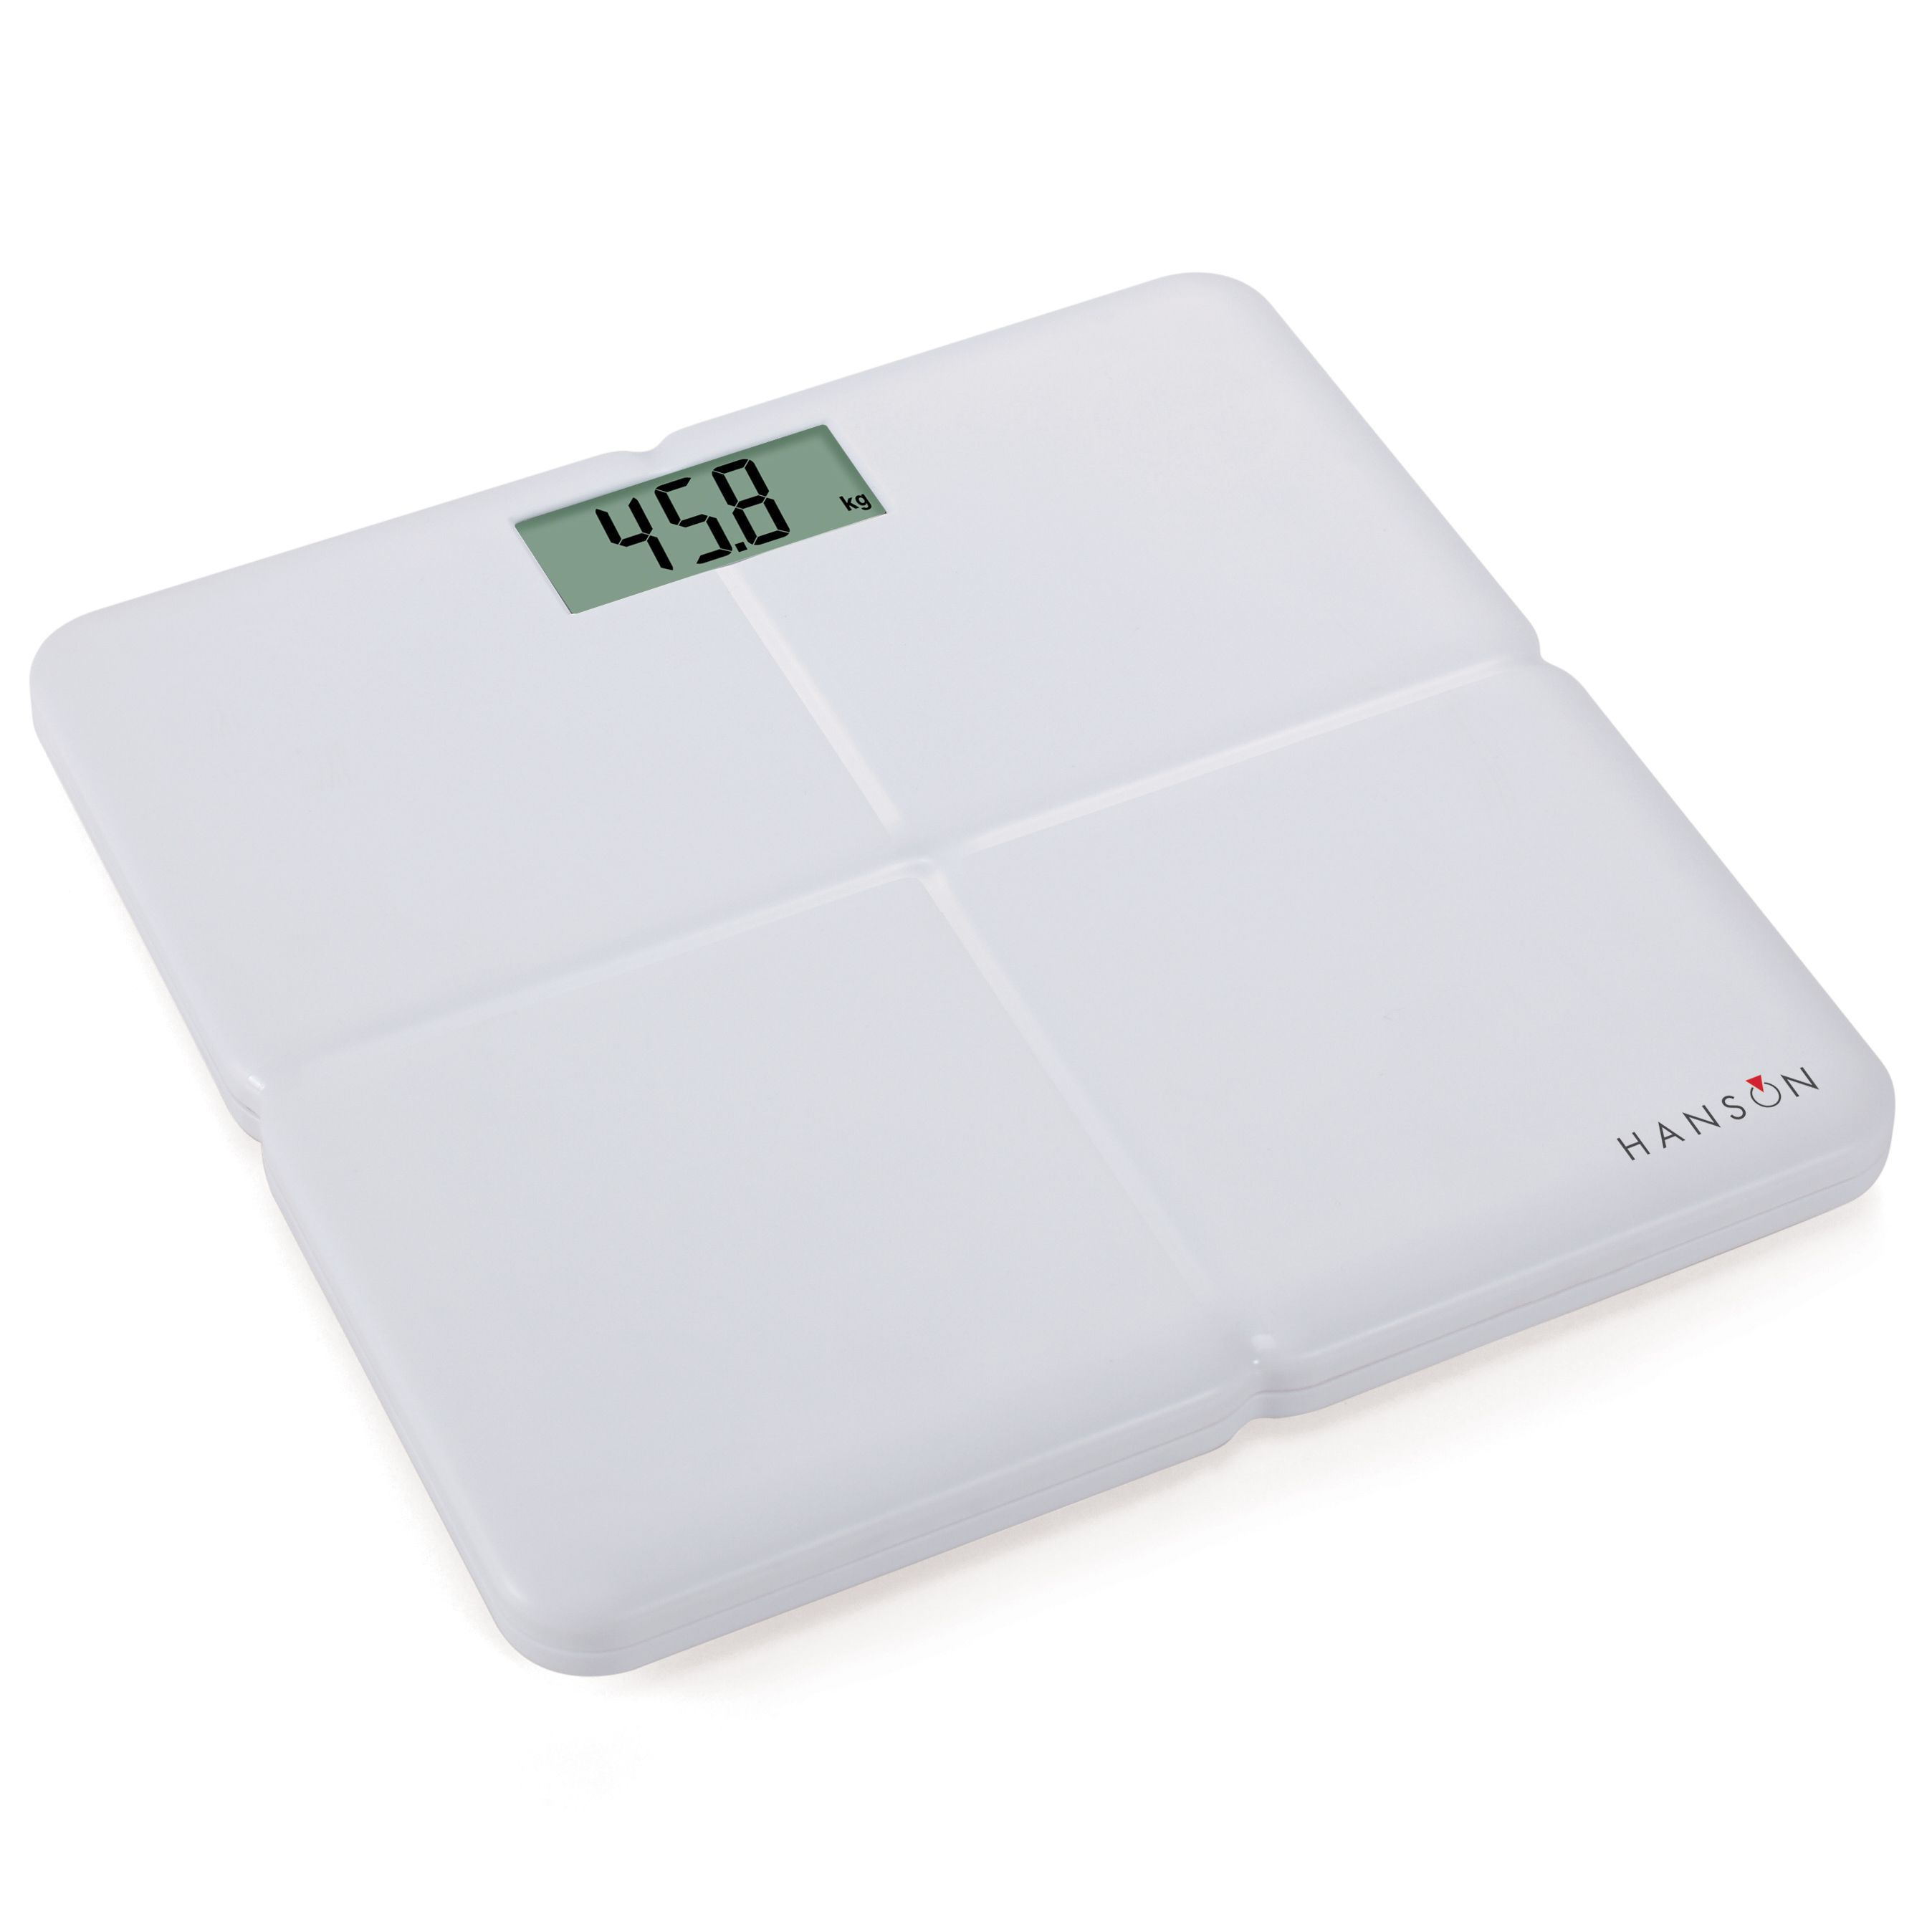 free image of weighing scales bathroom slides galleries home htm